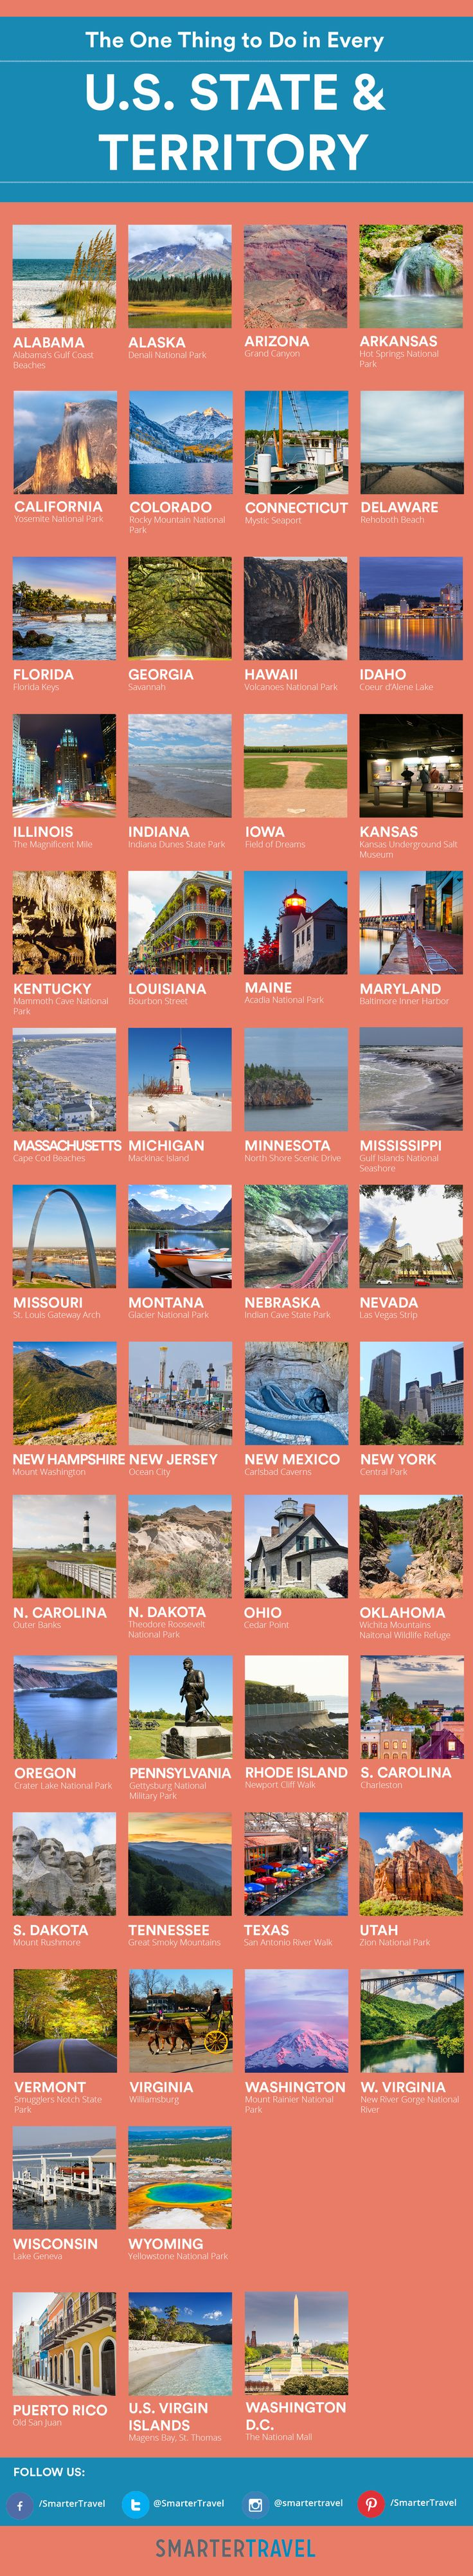 The Great American Bucket List: 50 States One Thing to Do